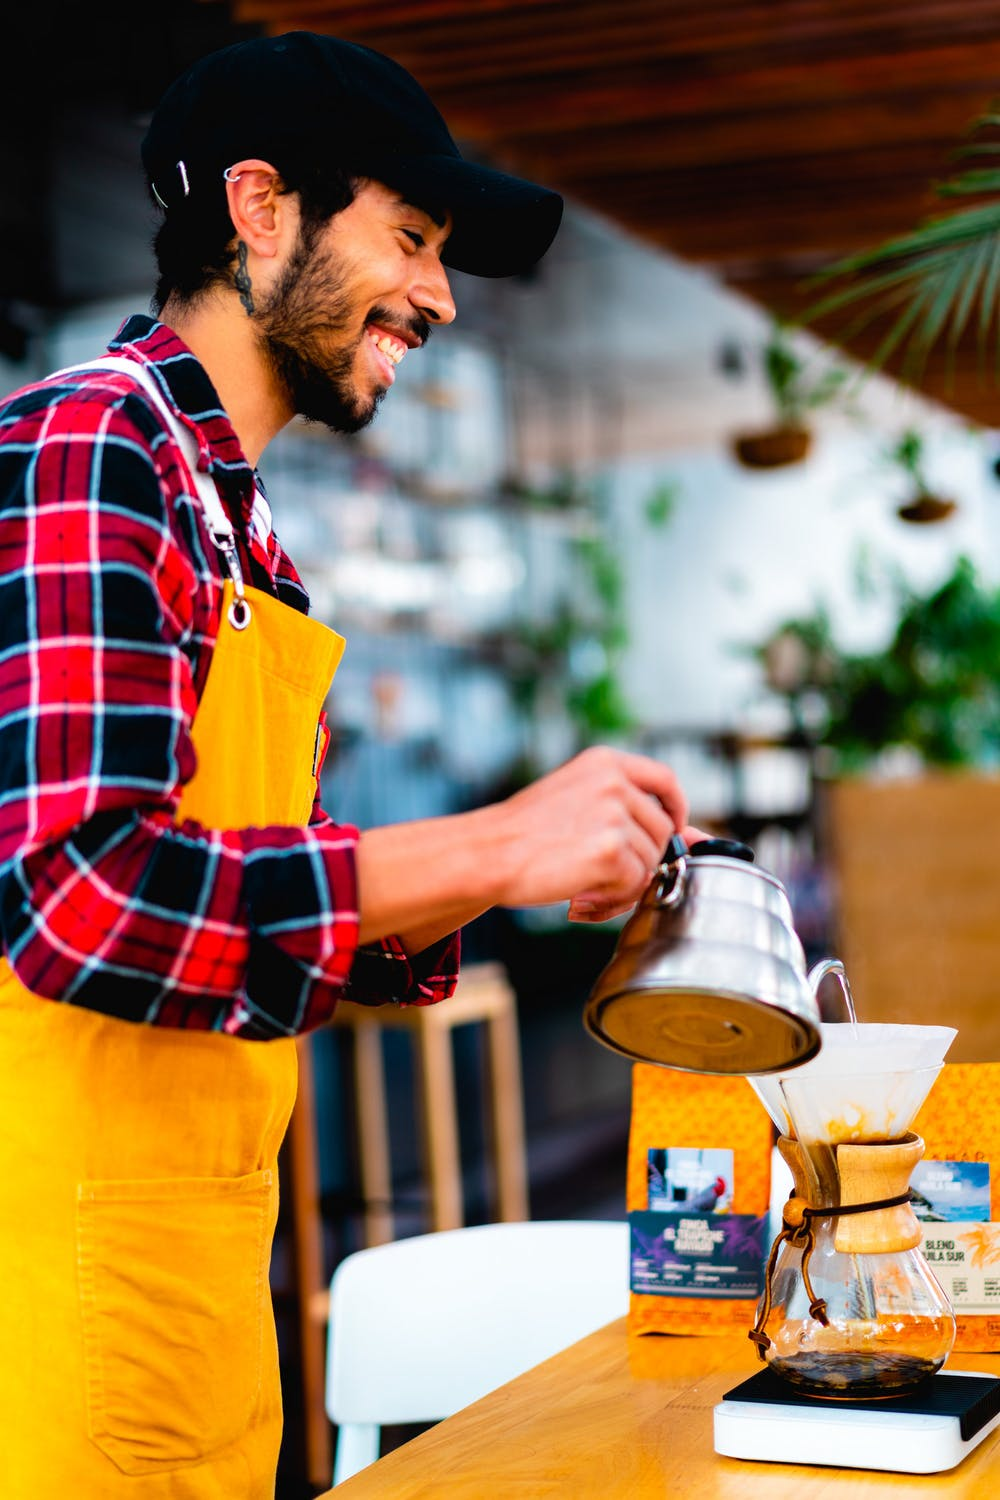 Smiling man wearing a red and black plaid flannel shirt and orange barista apron pouring hot water into a Chemex from a gooseneck kettle